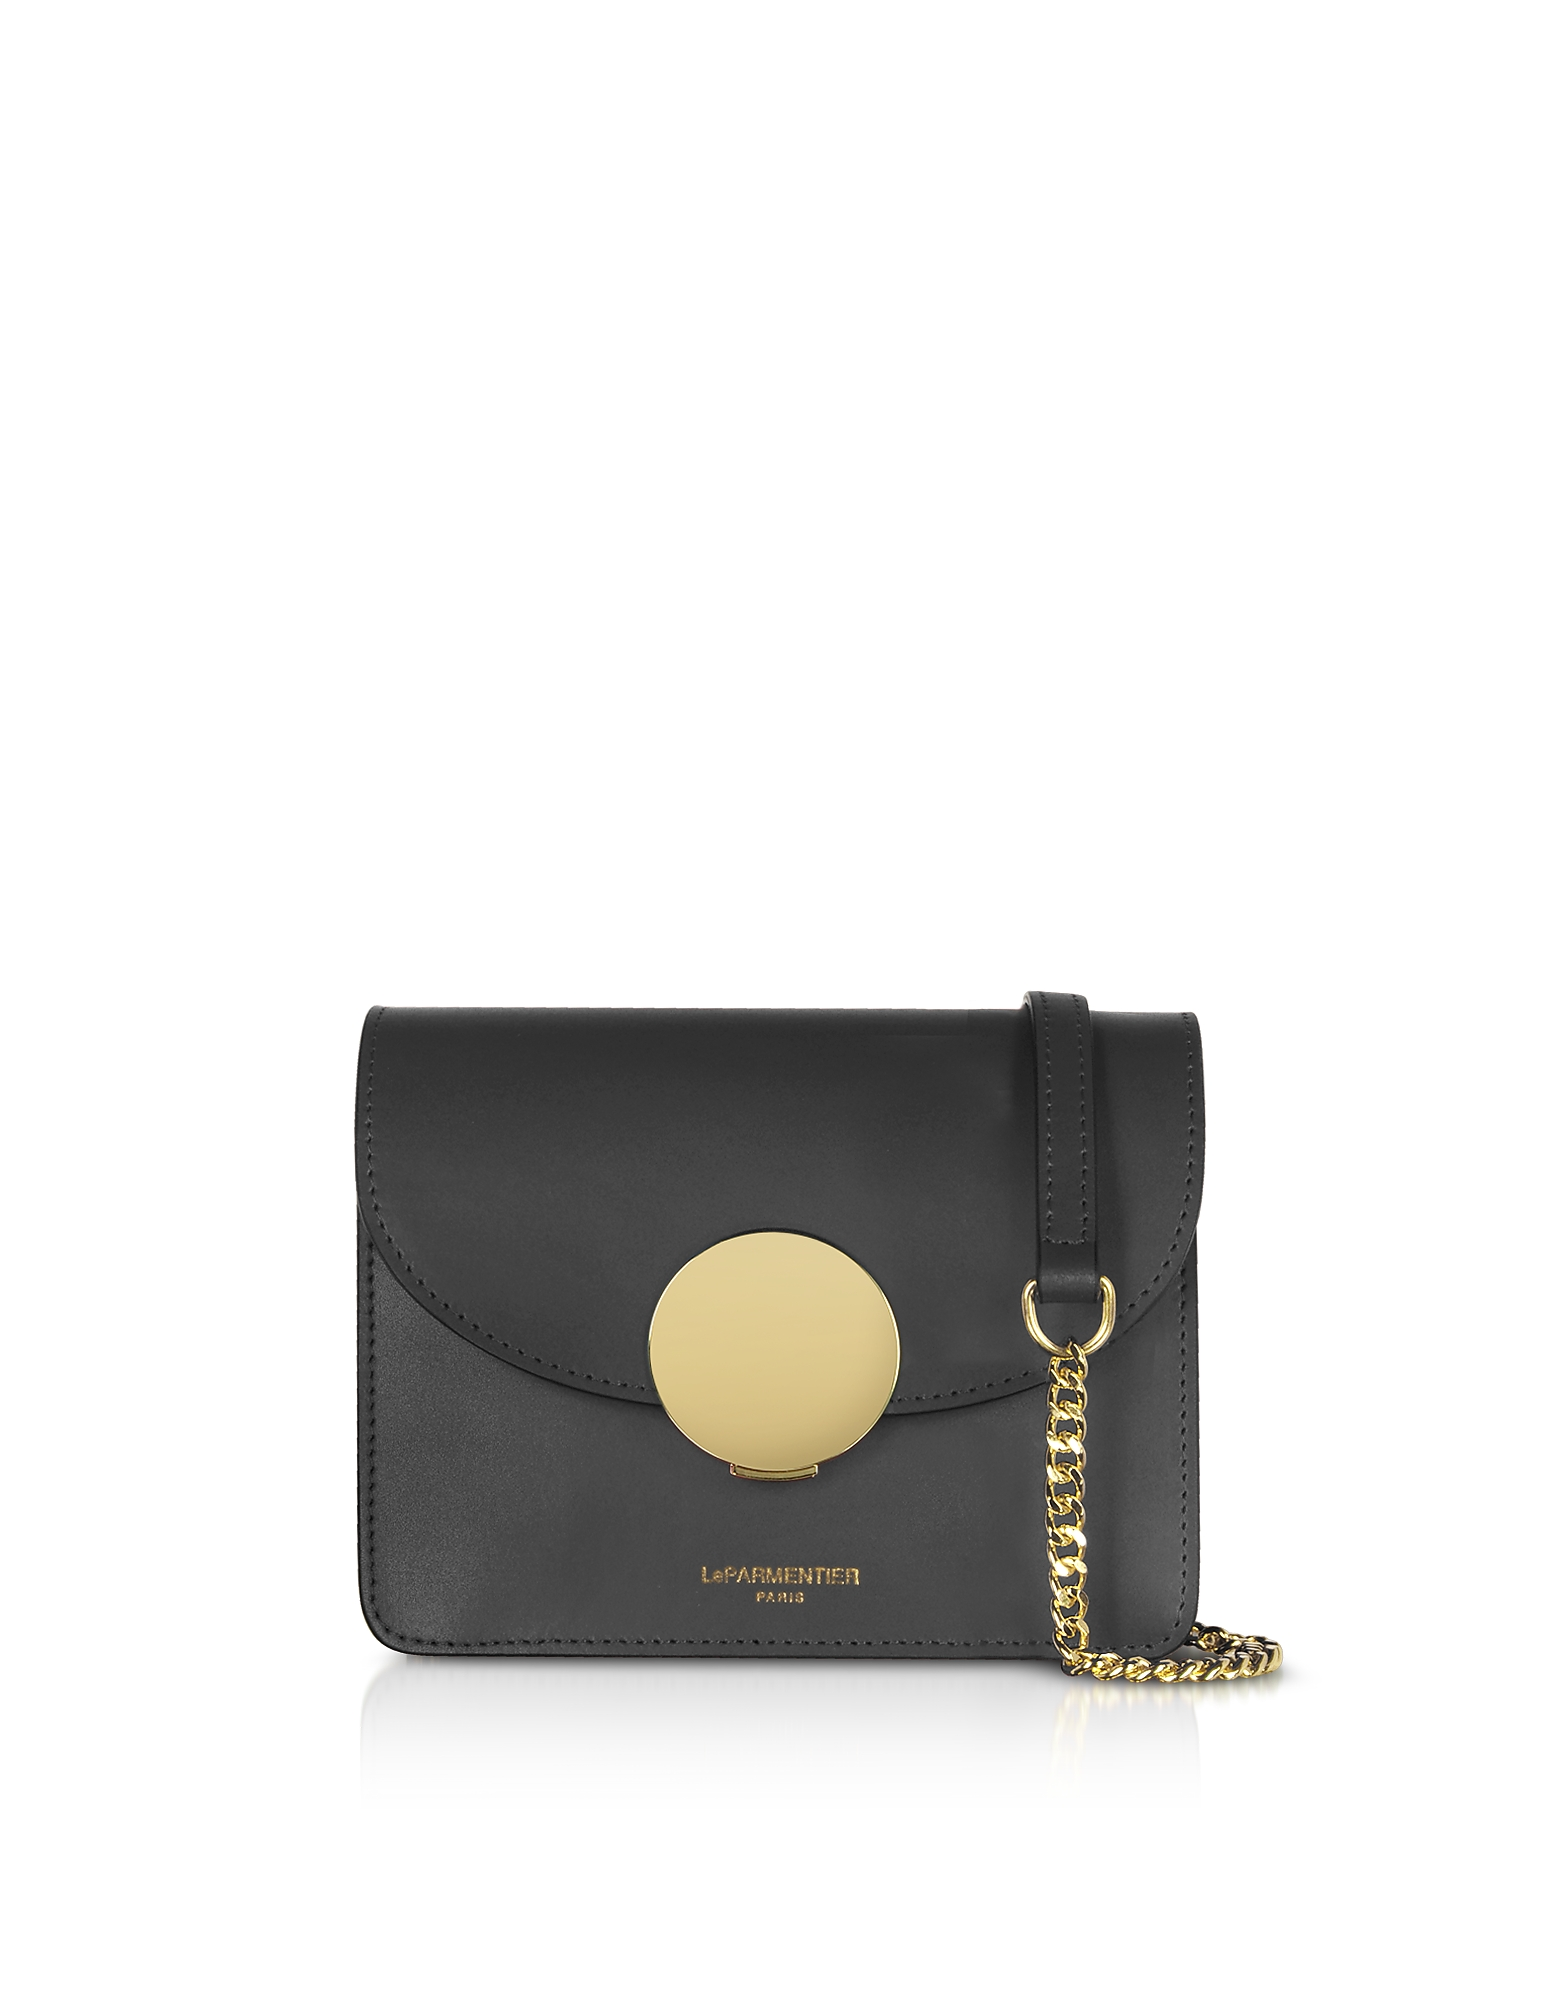 Le Parmentier Handbags, New Ondina Mini Shoulder Bag